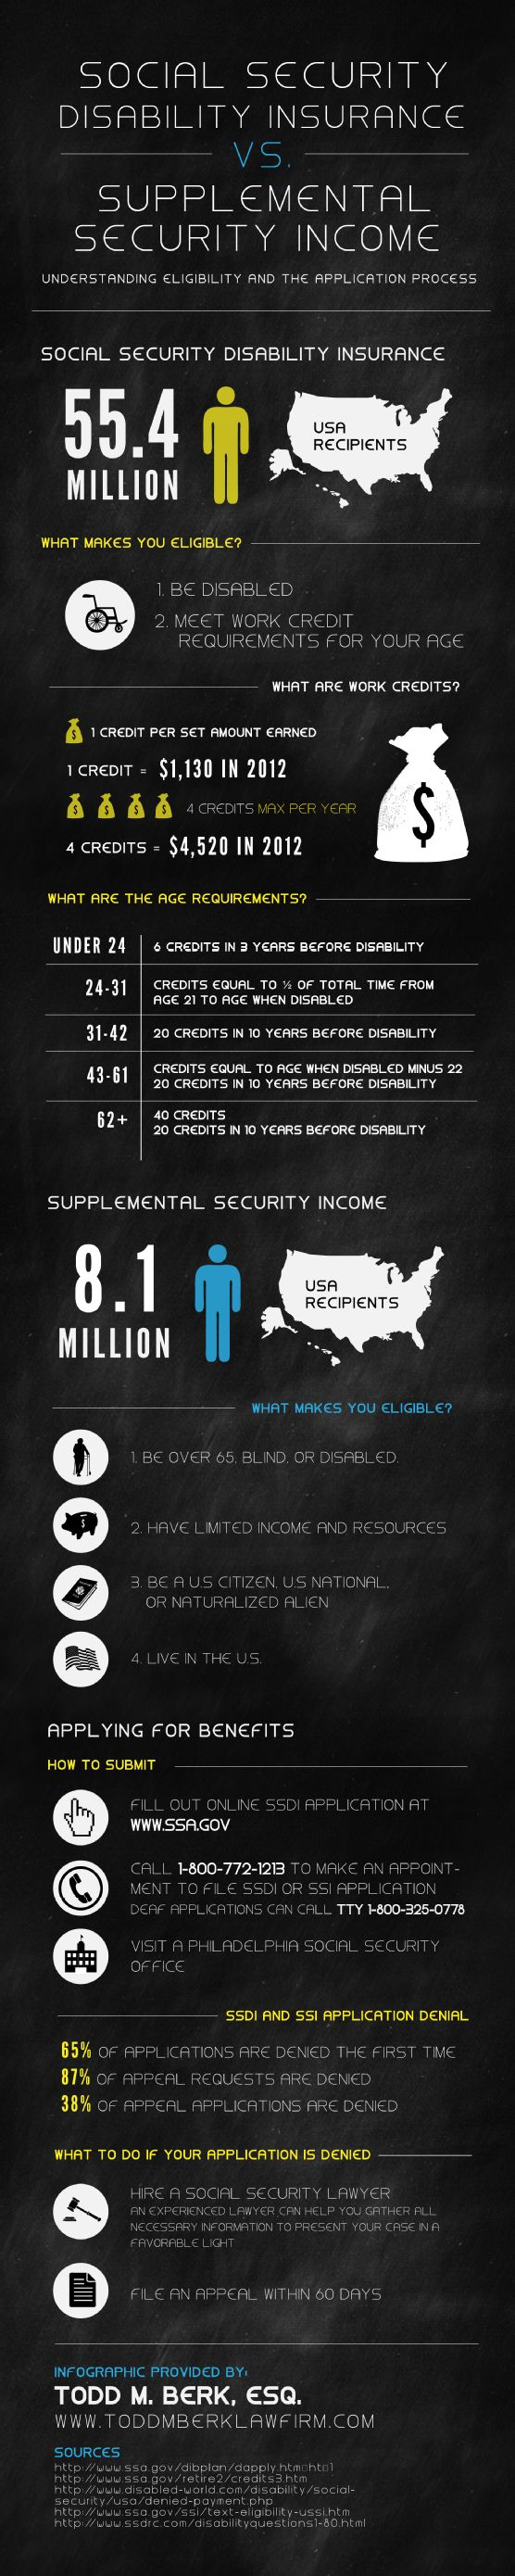 Social Security Disability Insurance vs. Supplemental Security Income